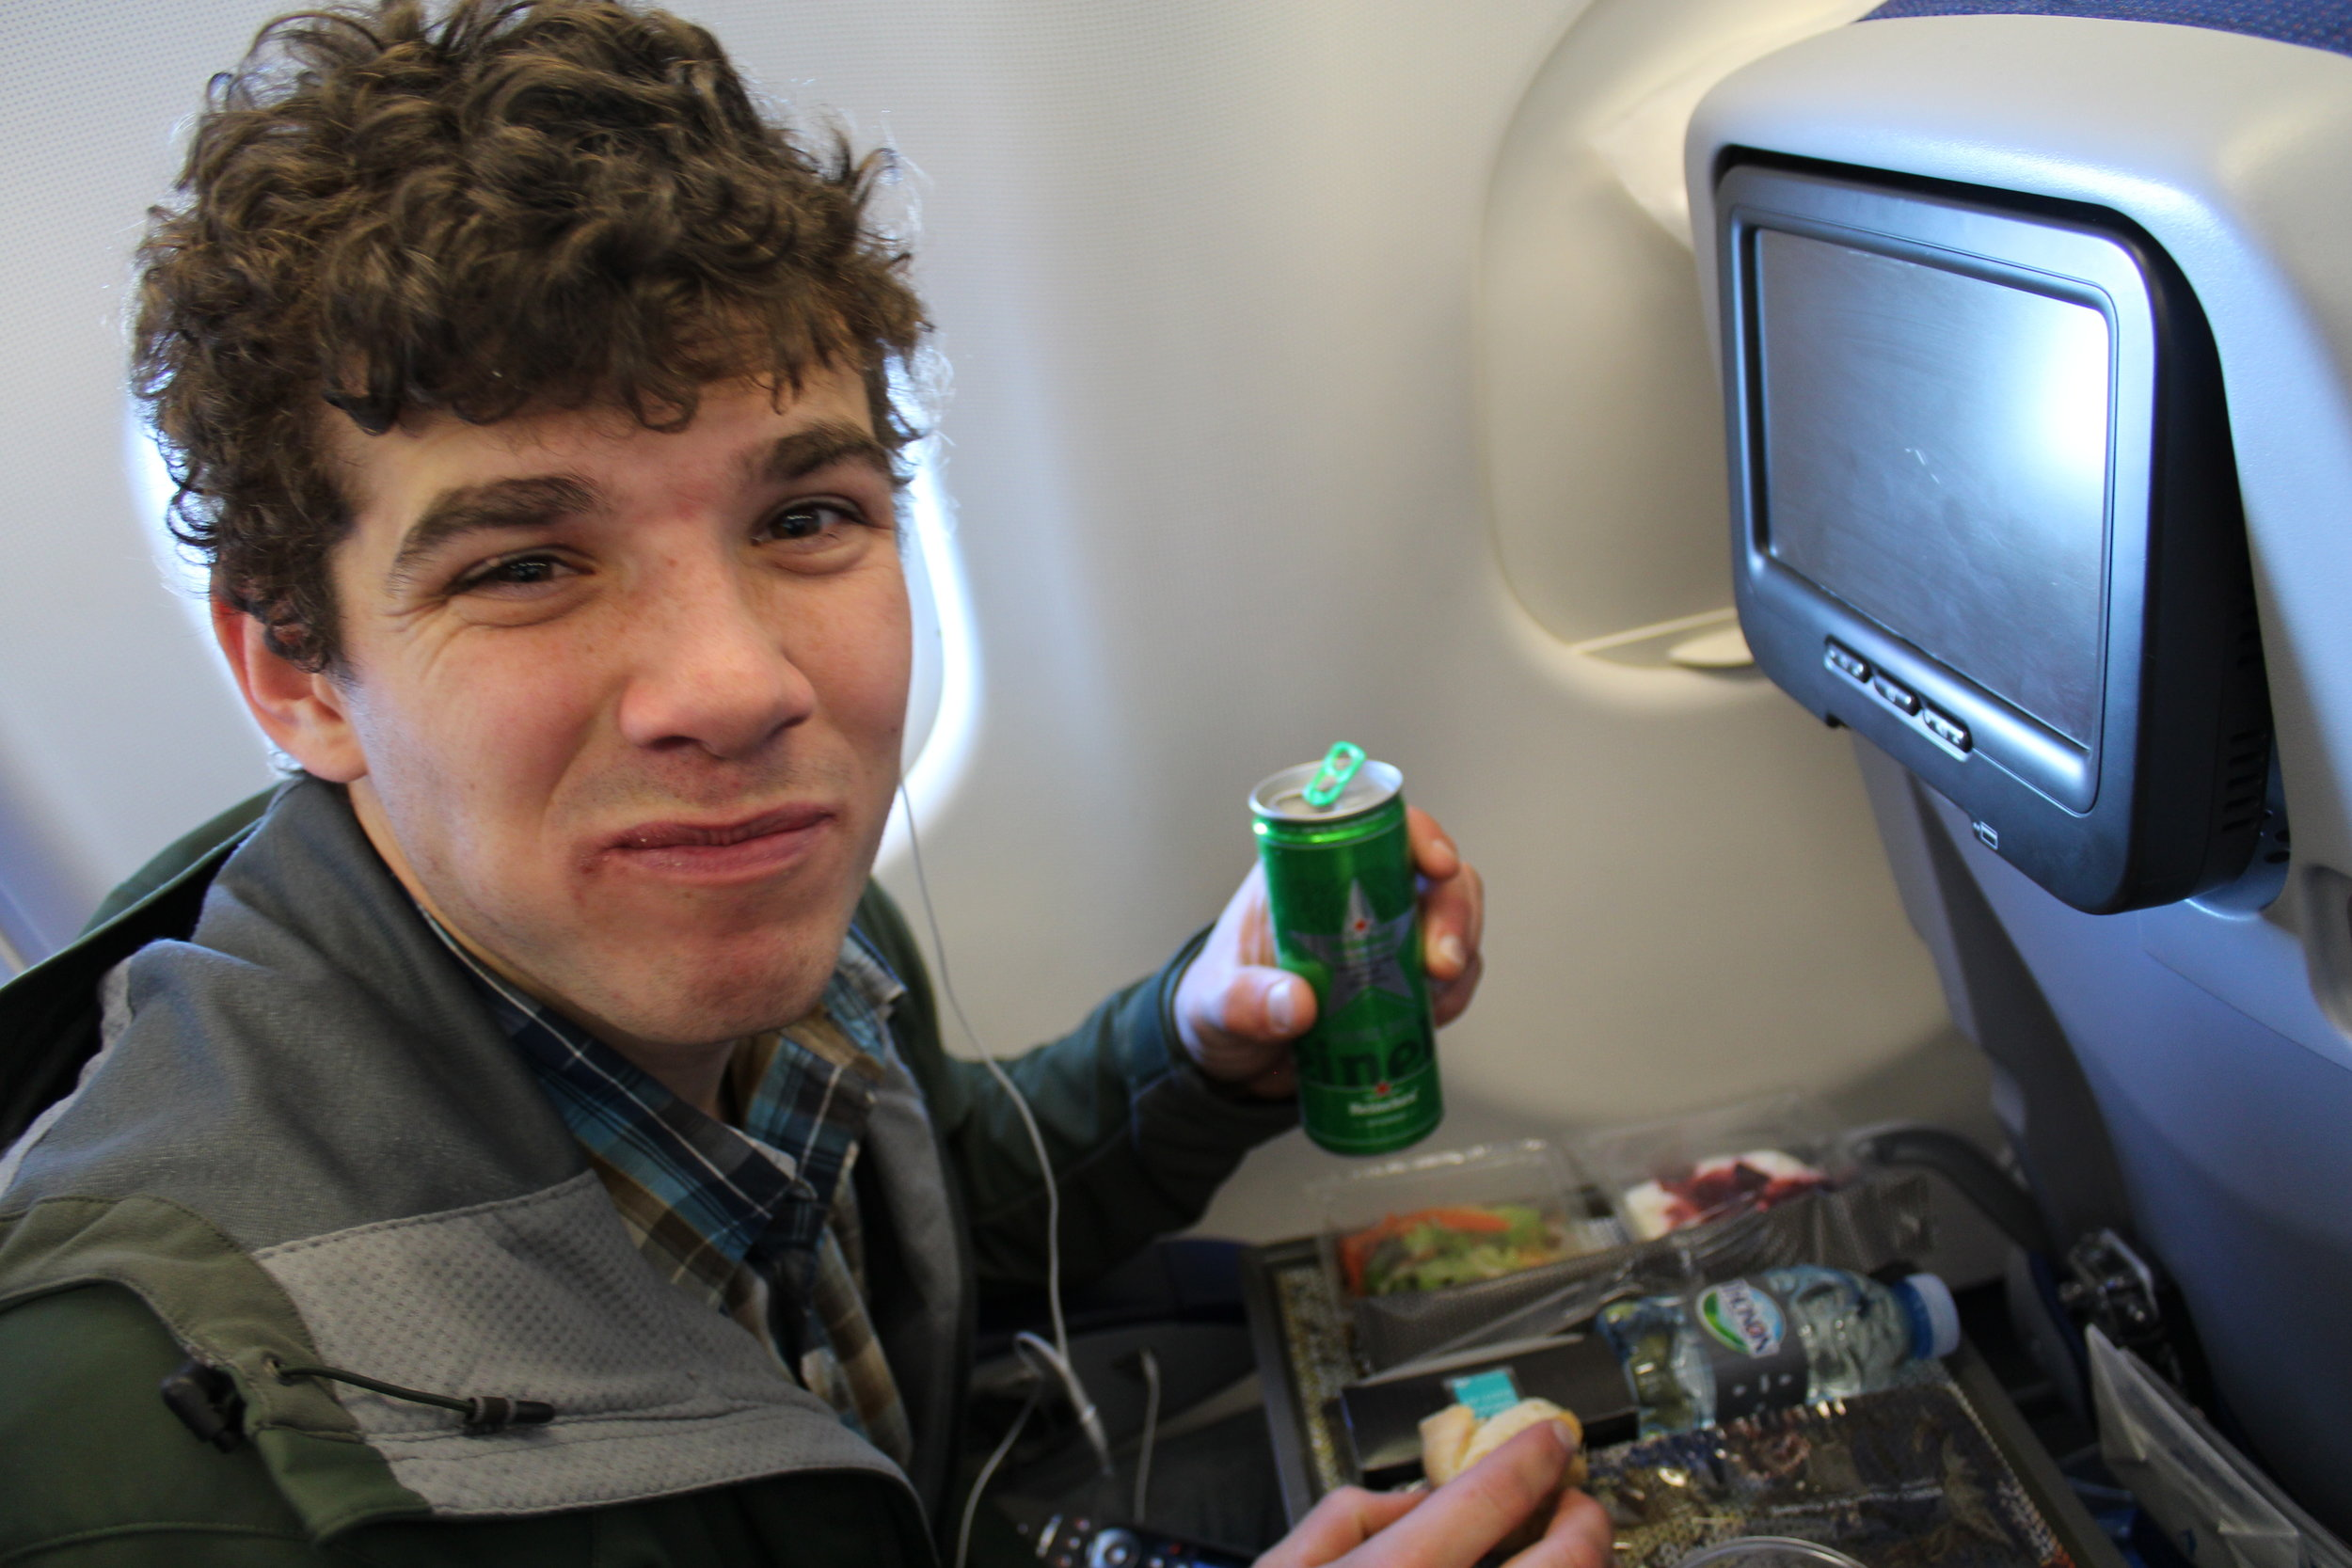 There was so much good food on our KLM flight!